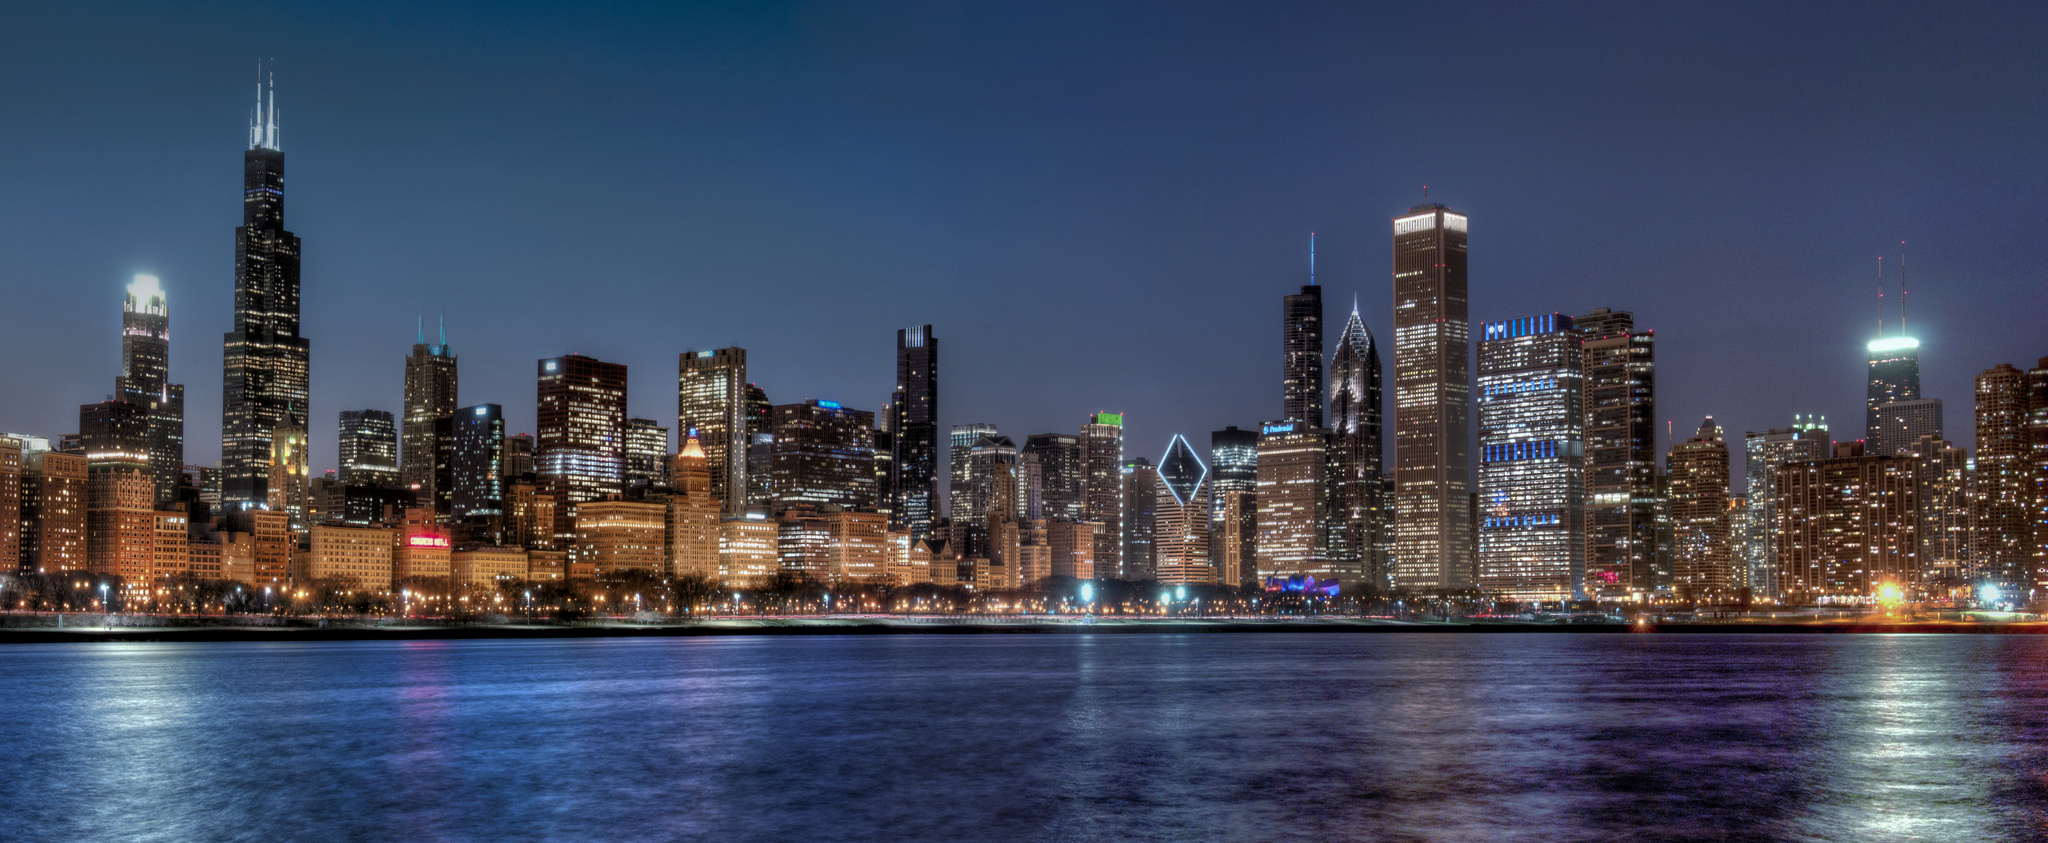 chicago city in illinois thousand wonders